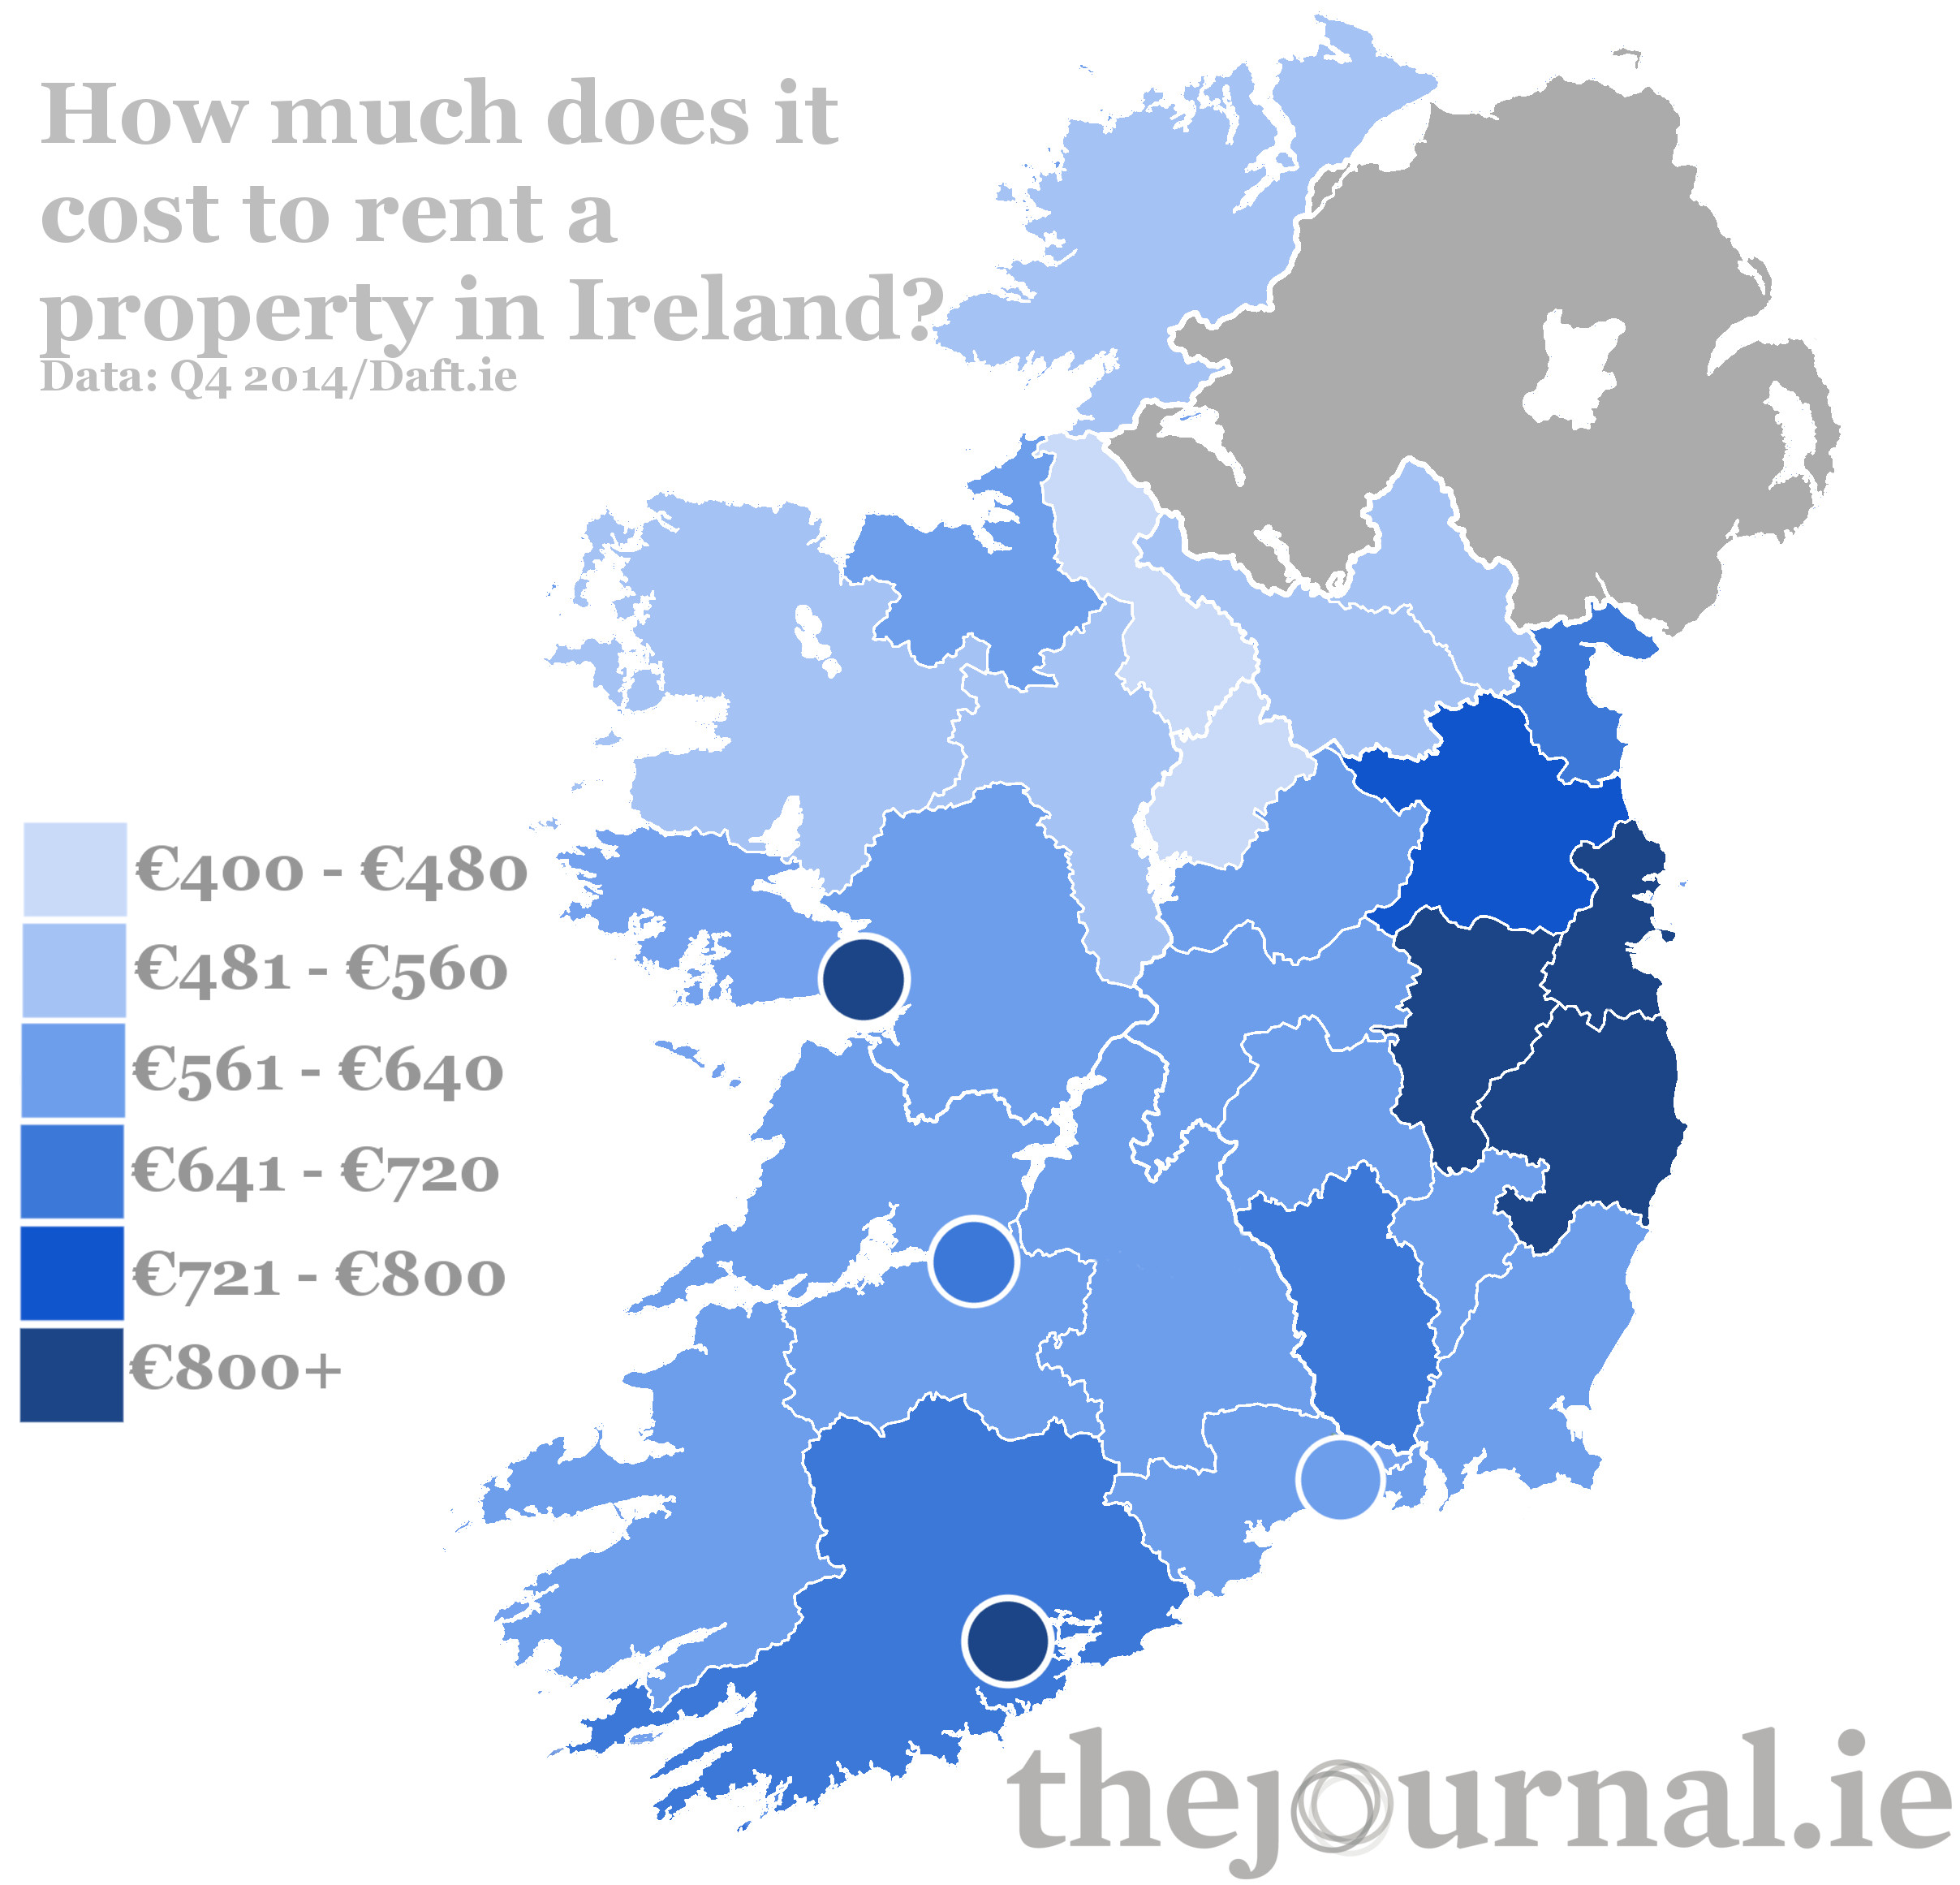 Looking For Place To Rent: Here Is What It Costs To Rent A Property In Ireland